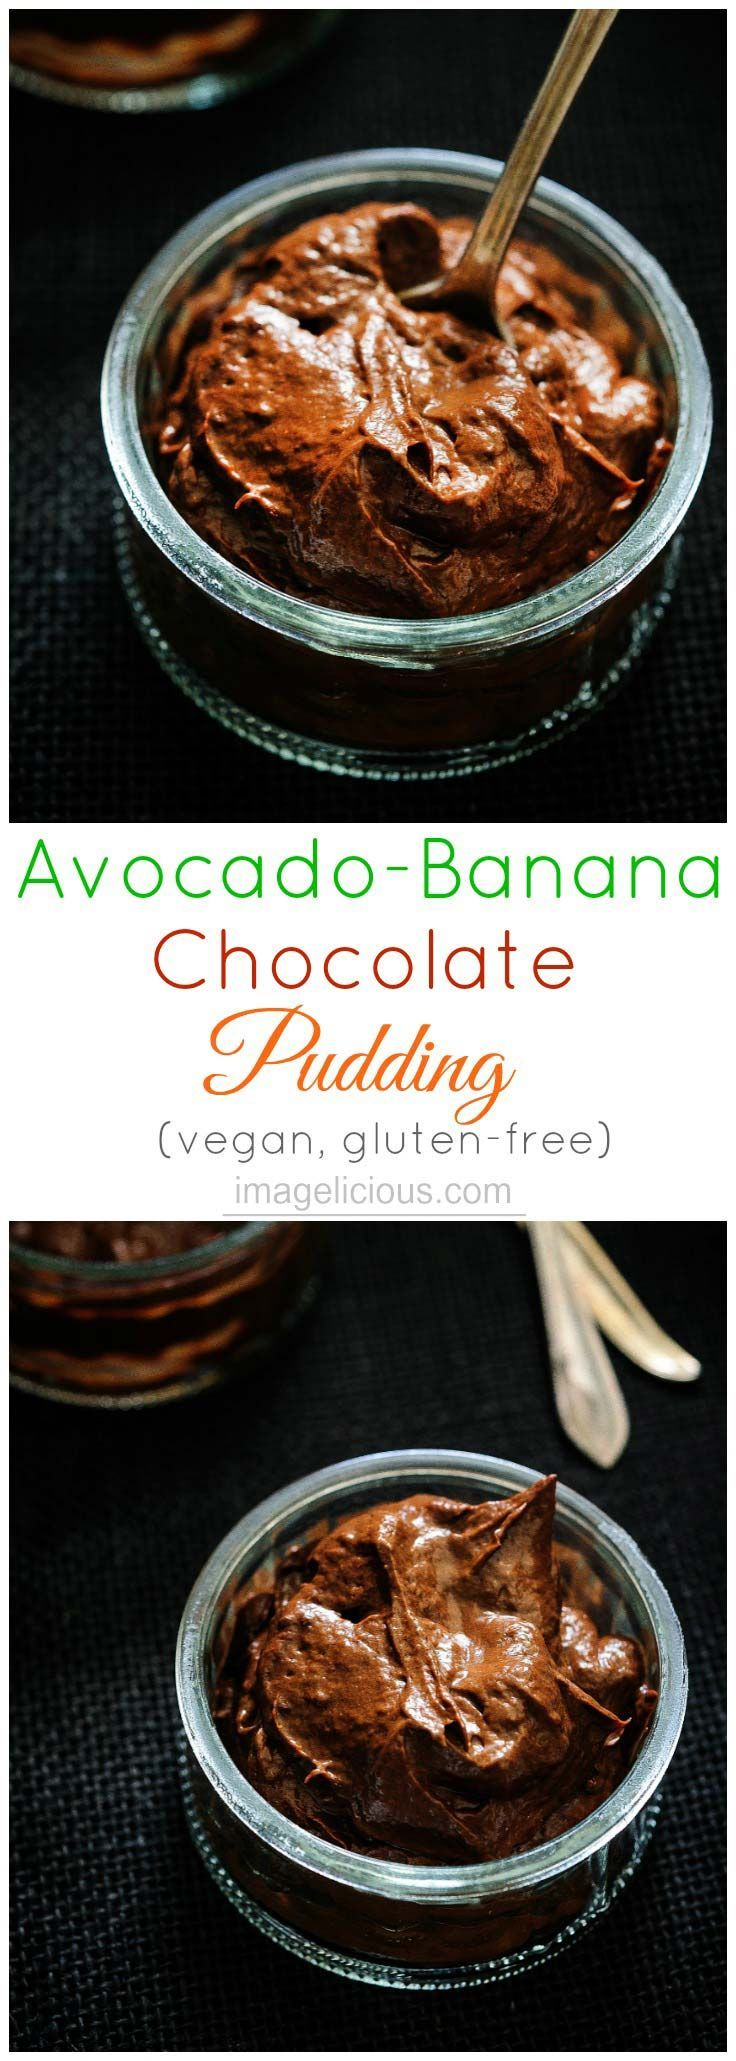 Avocado Banana Chocolate Pudding is intensely chocolate with a hint of banana and maple syrup. Healthy and delicious, no-one will ever guess that it has avocados and no butter or chocolate. Enjoy this healthy treat any time. It's vegan, raw, and gluten-free. Perfect treat for Mother's Day | Imagelicious